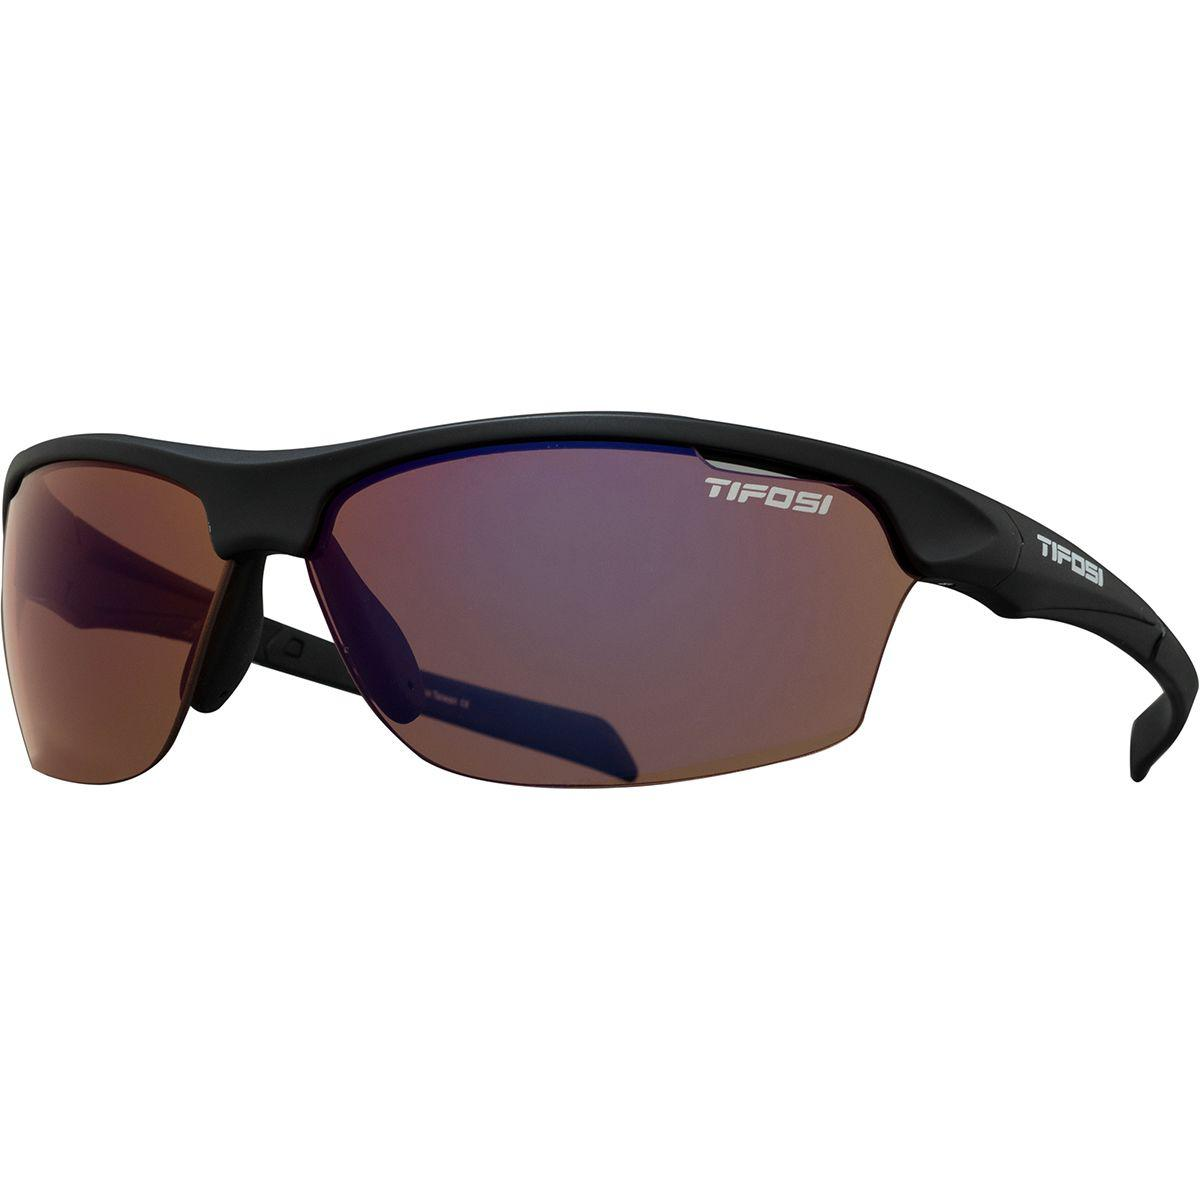 b15aa961b66 Lyst - Tifosi Optics Intense Sunglasses for Men